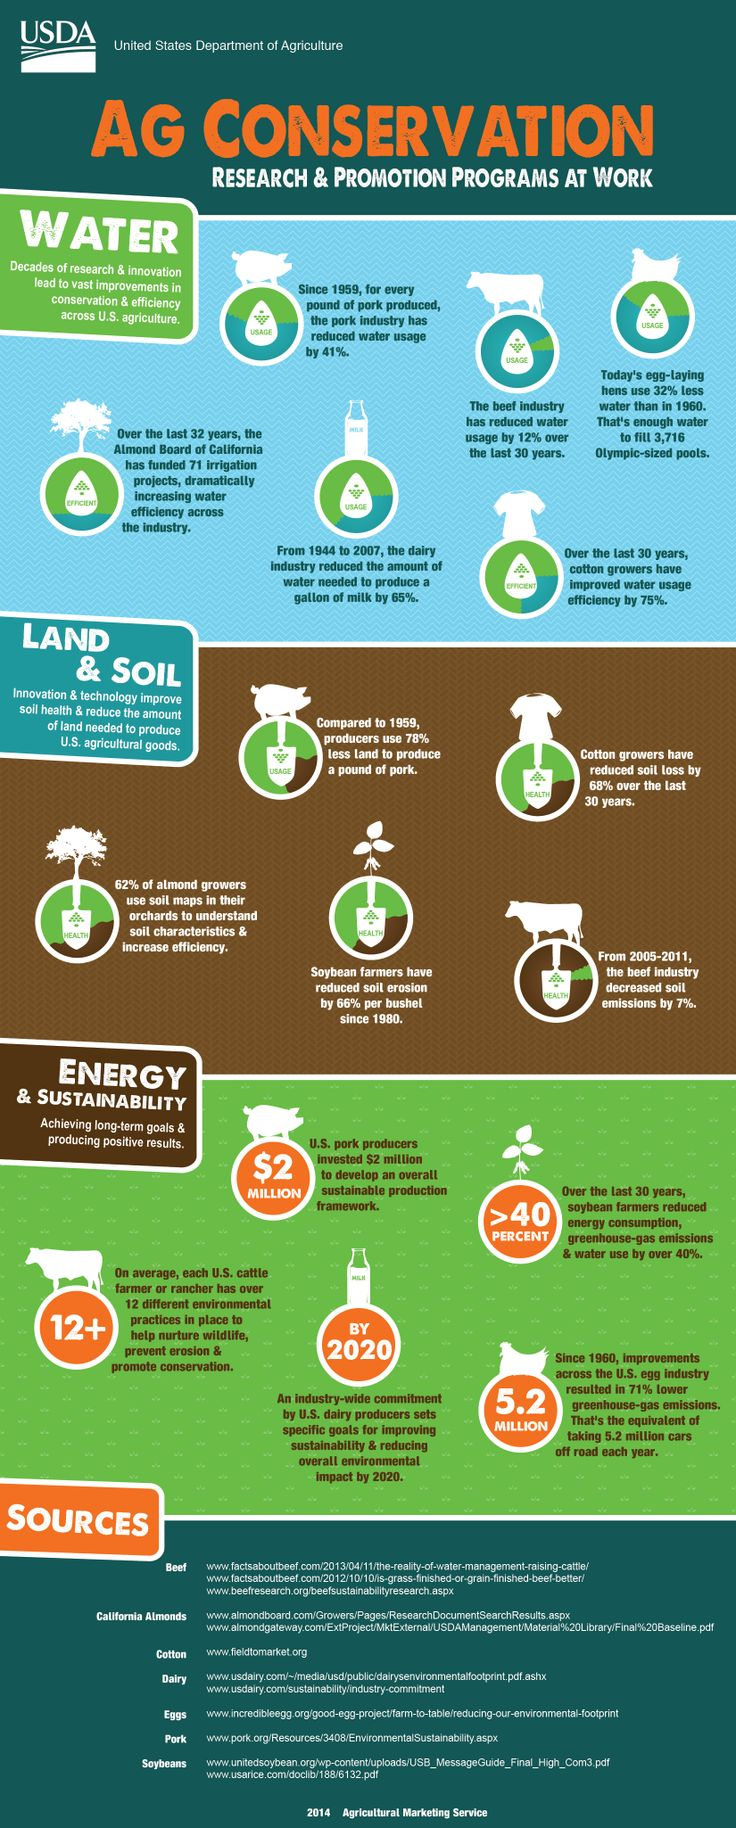 Best Ate Today Thank A Farmer Images On Pinterest Animal - Us soil conservation farm maps